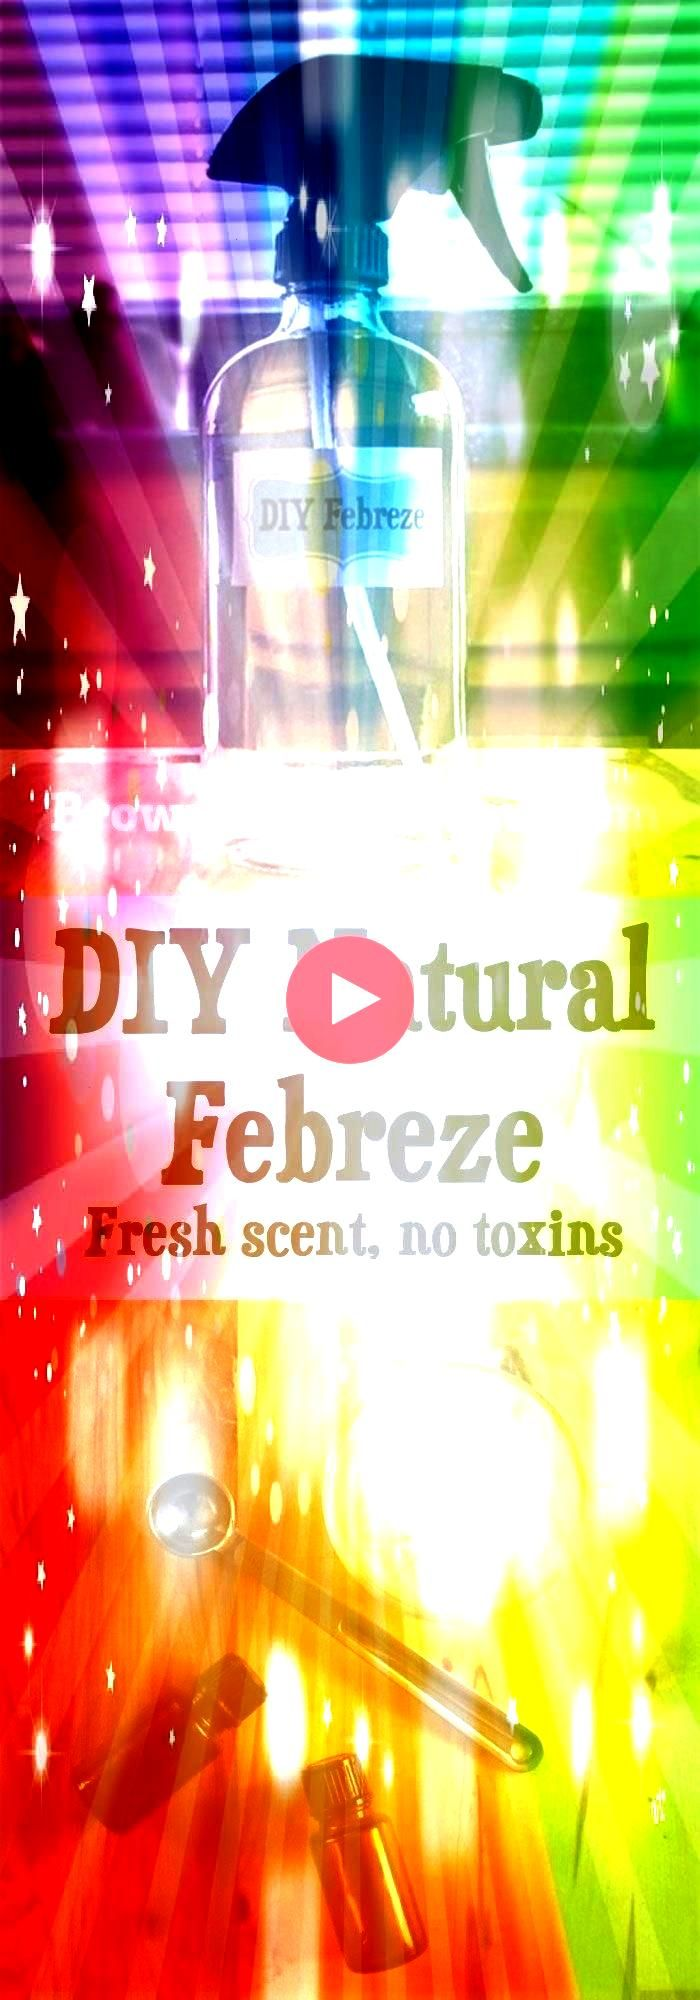 Its easy to make your own natural air freshener spray and you wont have to worry about toxic chemical residue on the babys cribon the dogs chew toyson anything at allDIY...